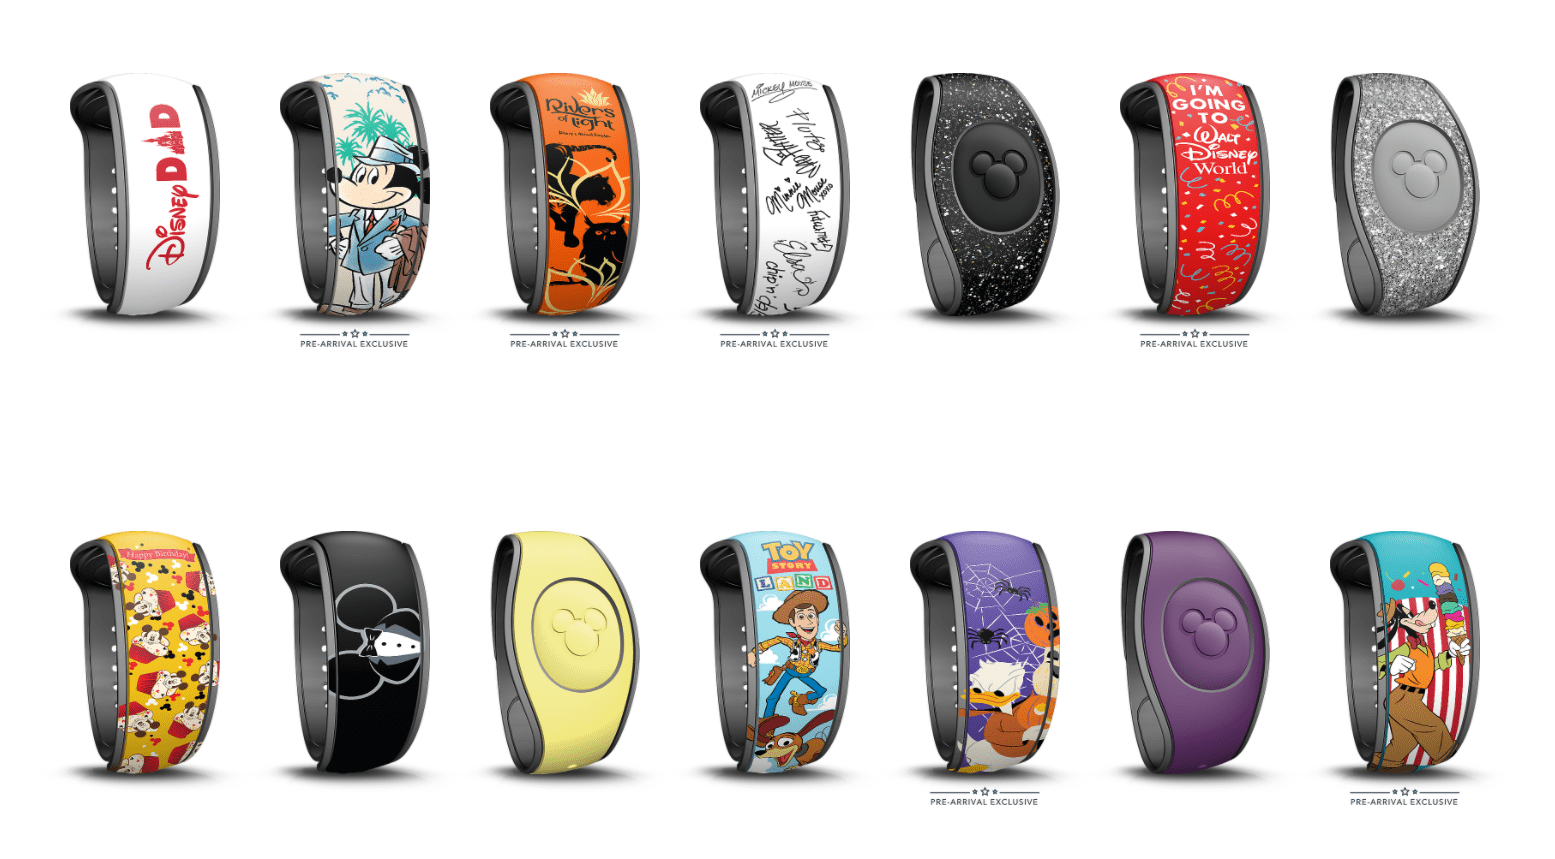 New Pre-Arrival Exclusive MagicBands on Disney World Website 9